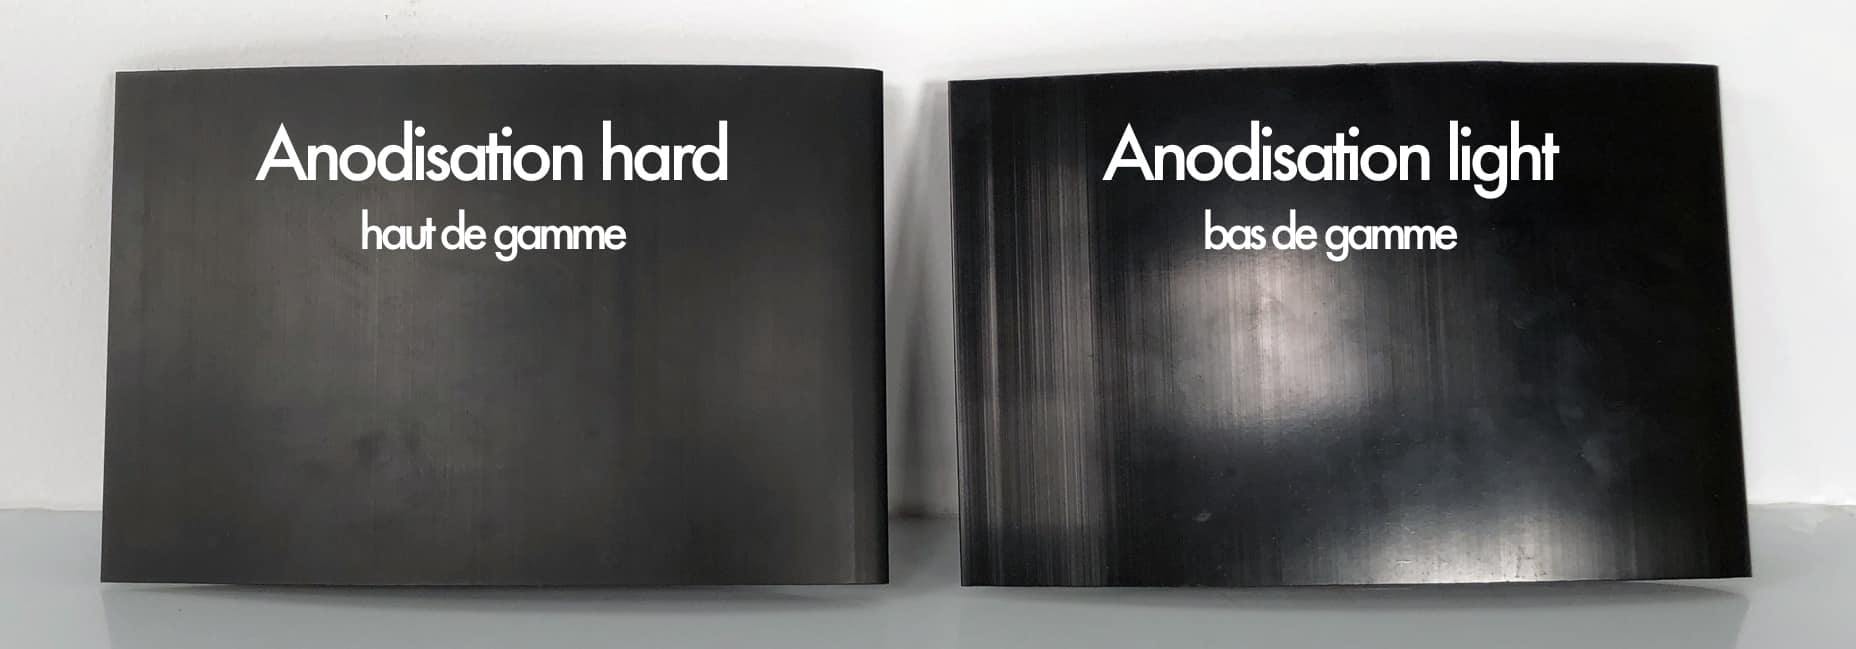 Difference between hard and light anodisation